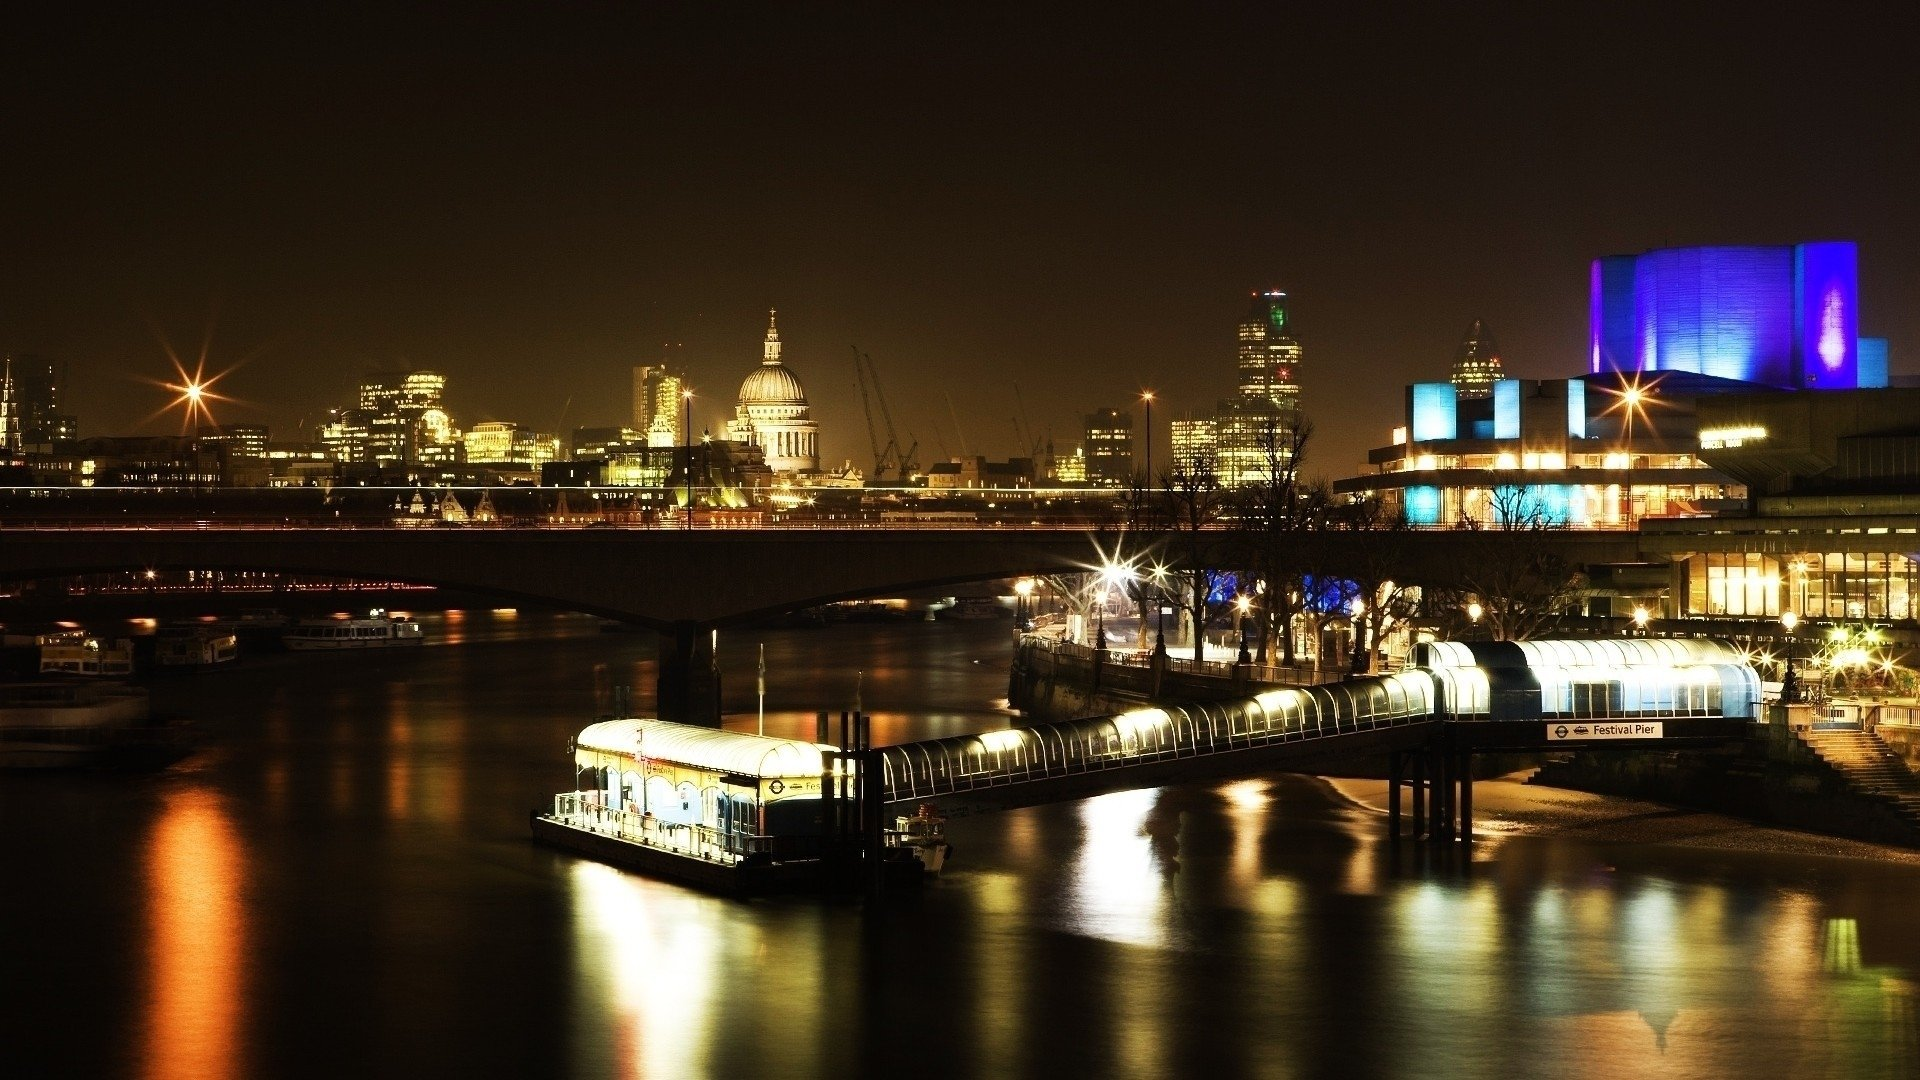 Awesome London Free Background Id484789 For Full Hd 1080p